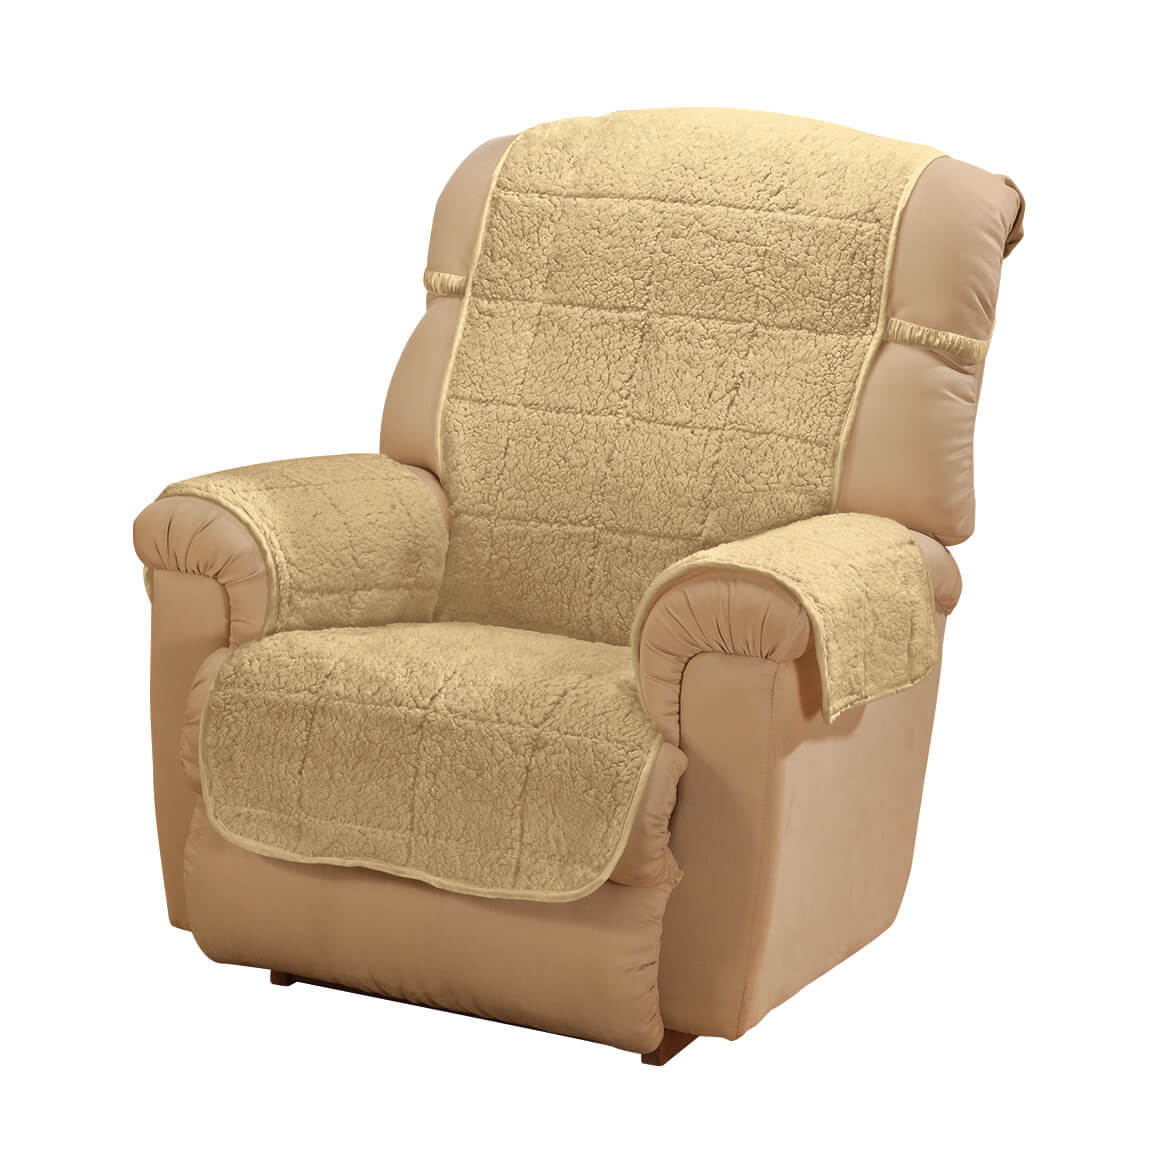 Parker Sherpa Recliner Cover By Oakridge Camel Water Resistant Polyester 48 X 23 Back Cover 30 5 X 23 Seat Cover 2 Arm Covers Of 21 X 16